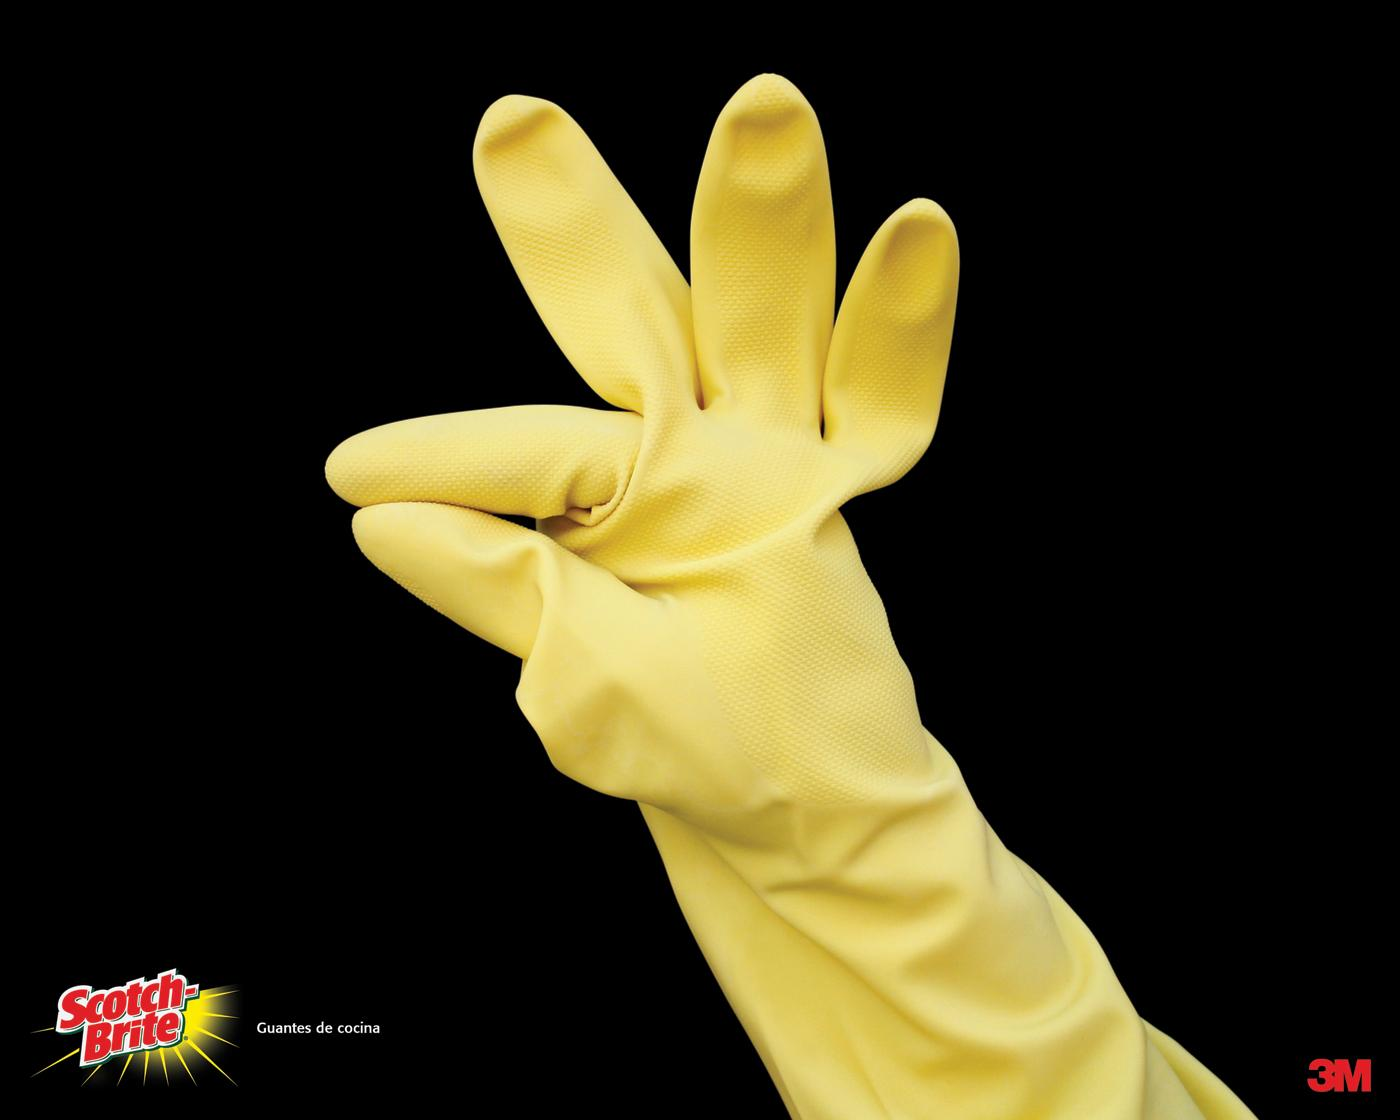 Scotch-Brite Print Ad -  Kitchen gloves, 1